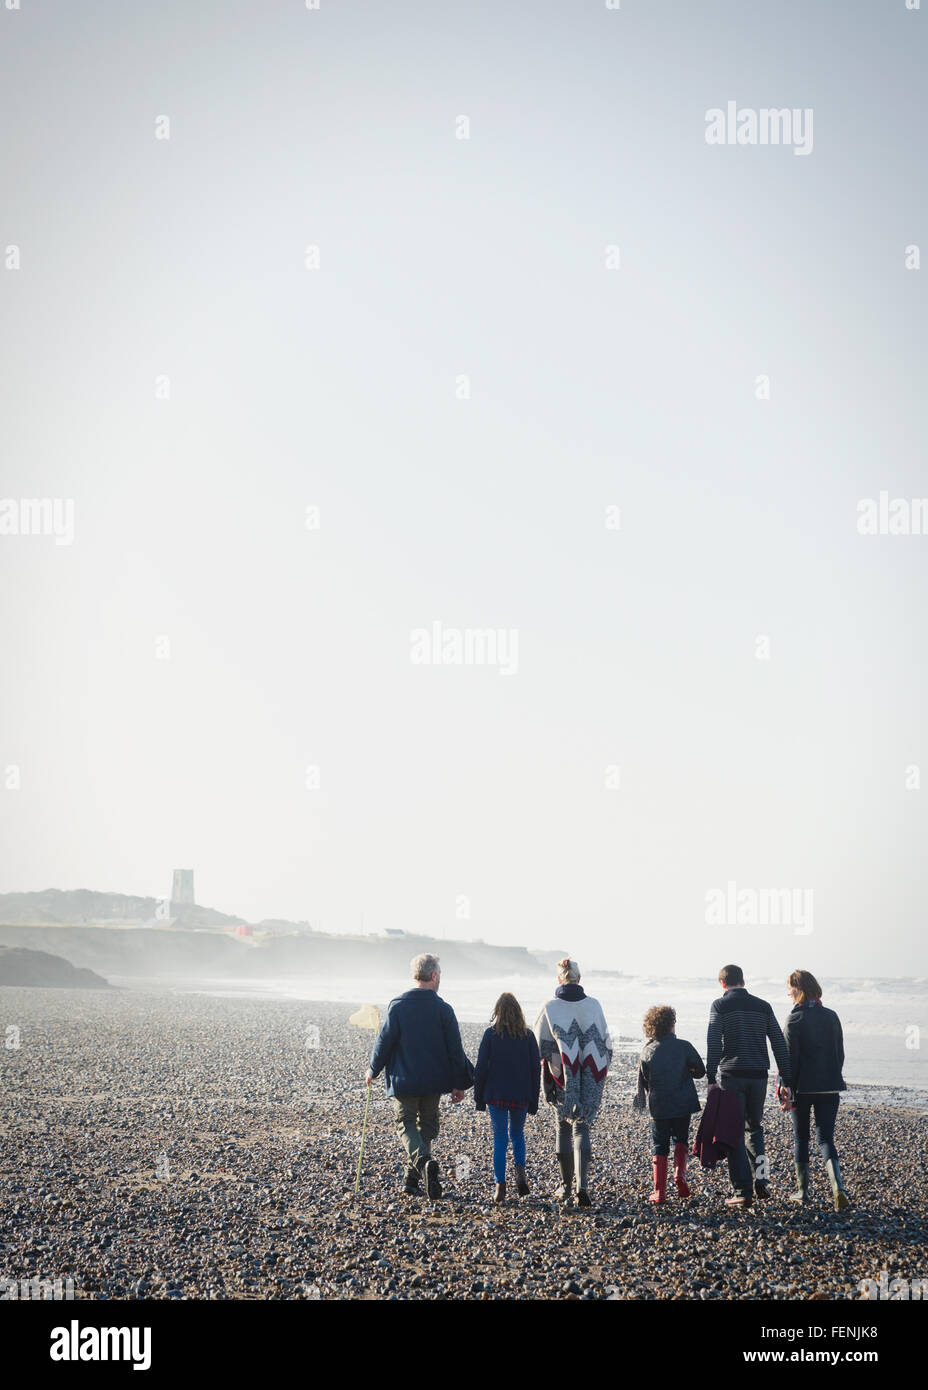 Multi-generation family walking on sunny beach in a row - Stock Image